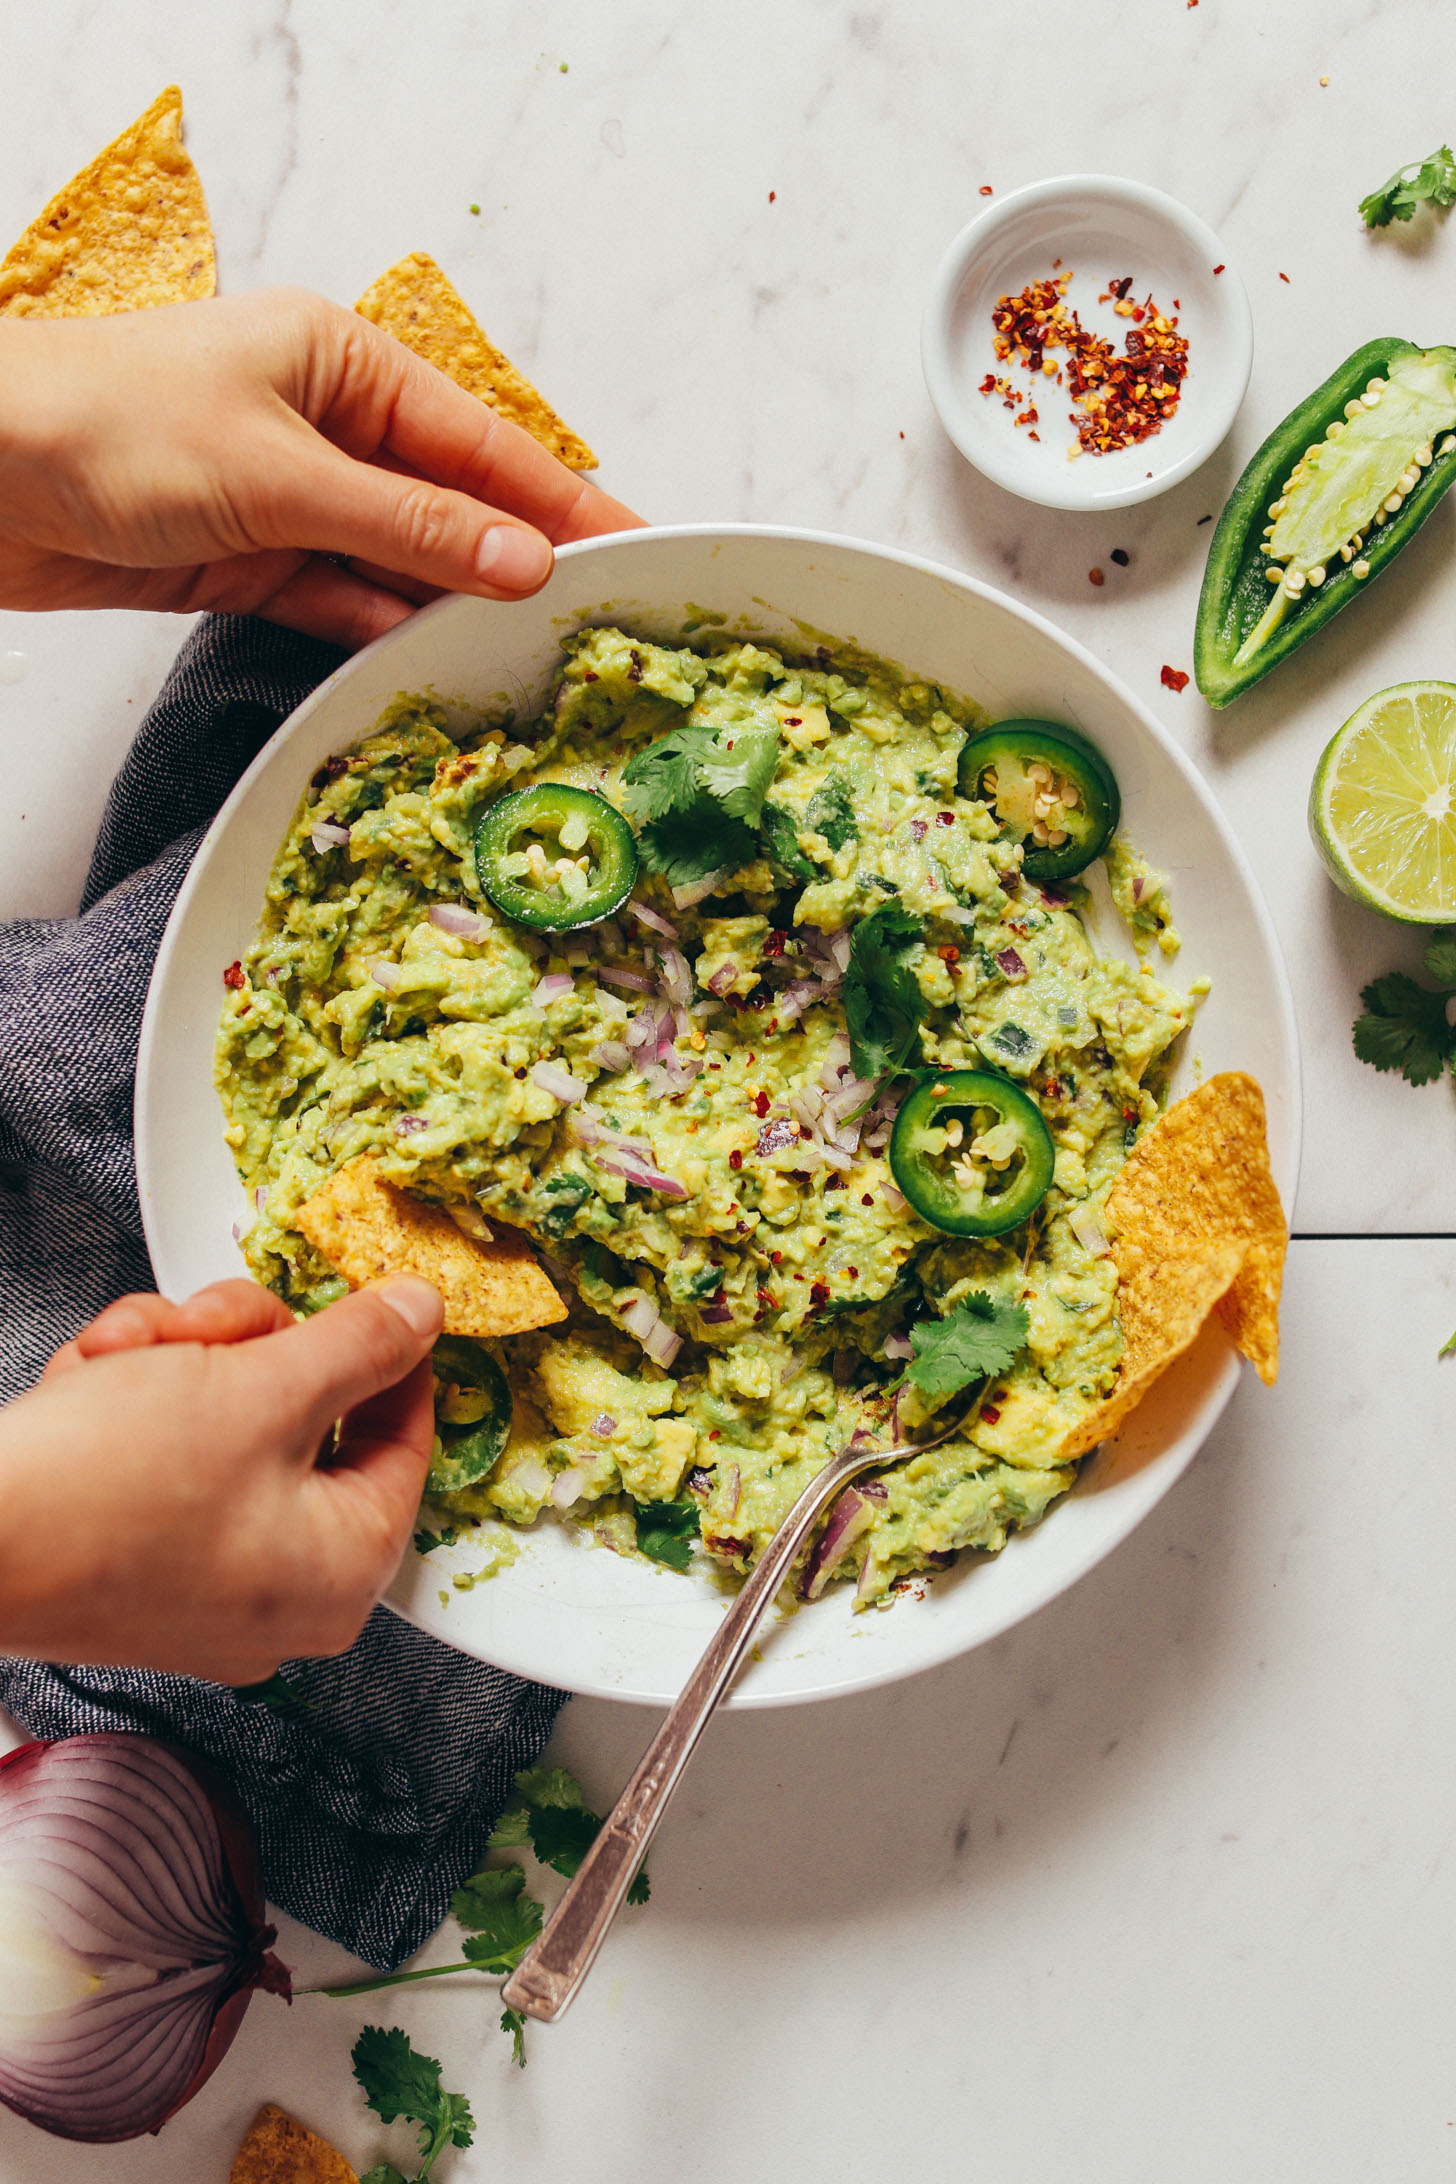 Overhead image of guacamole in a white bowl garnished with fresh jalapenos, and a hand with a chip scooping some guacamole